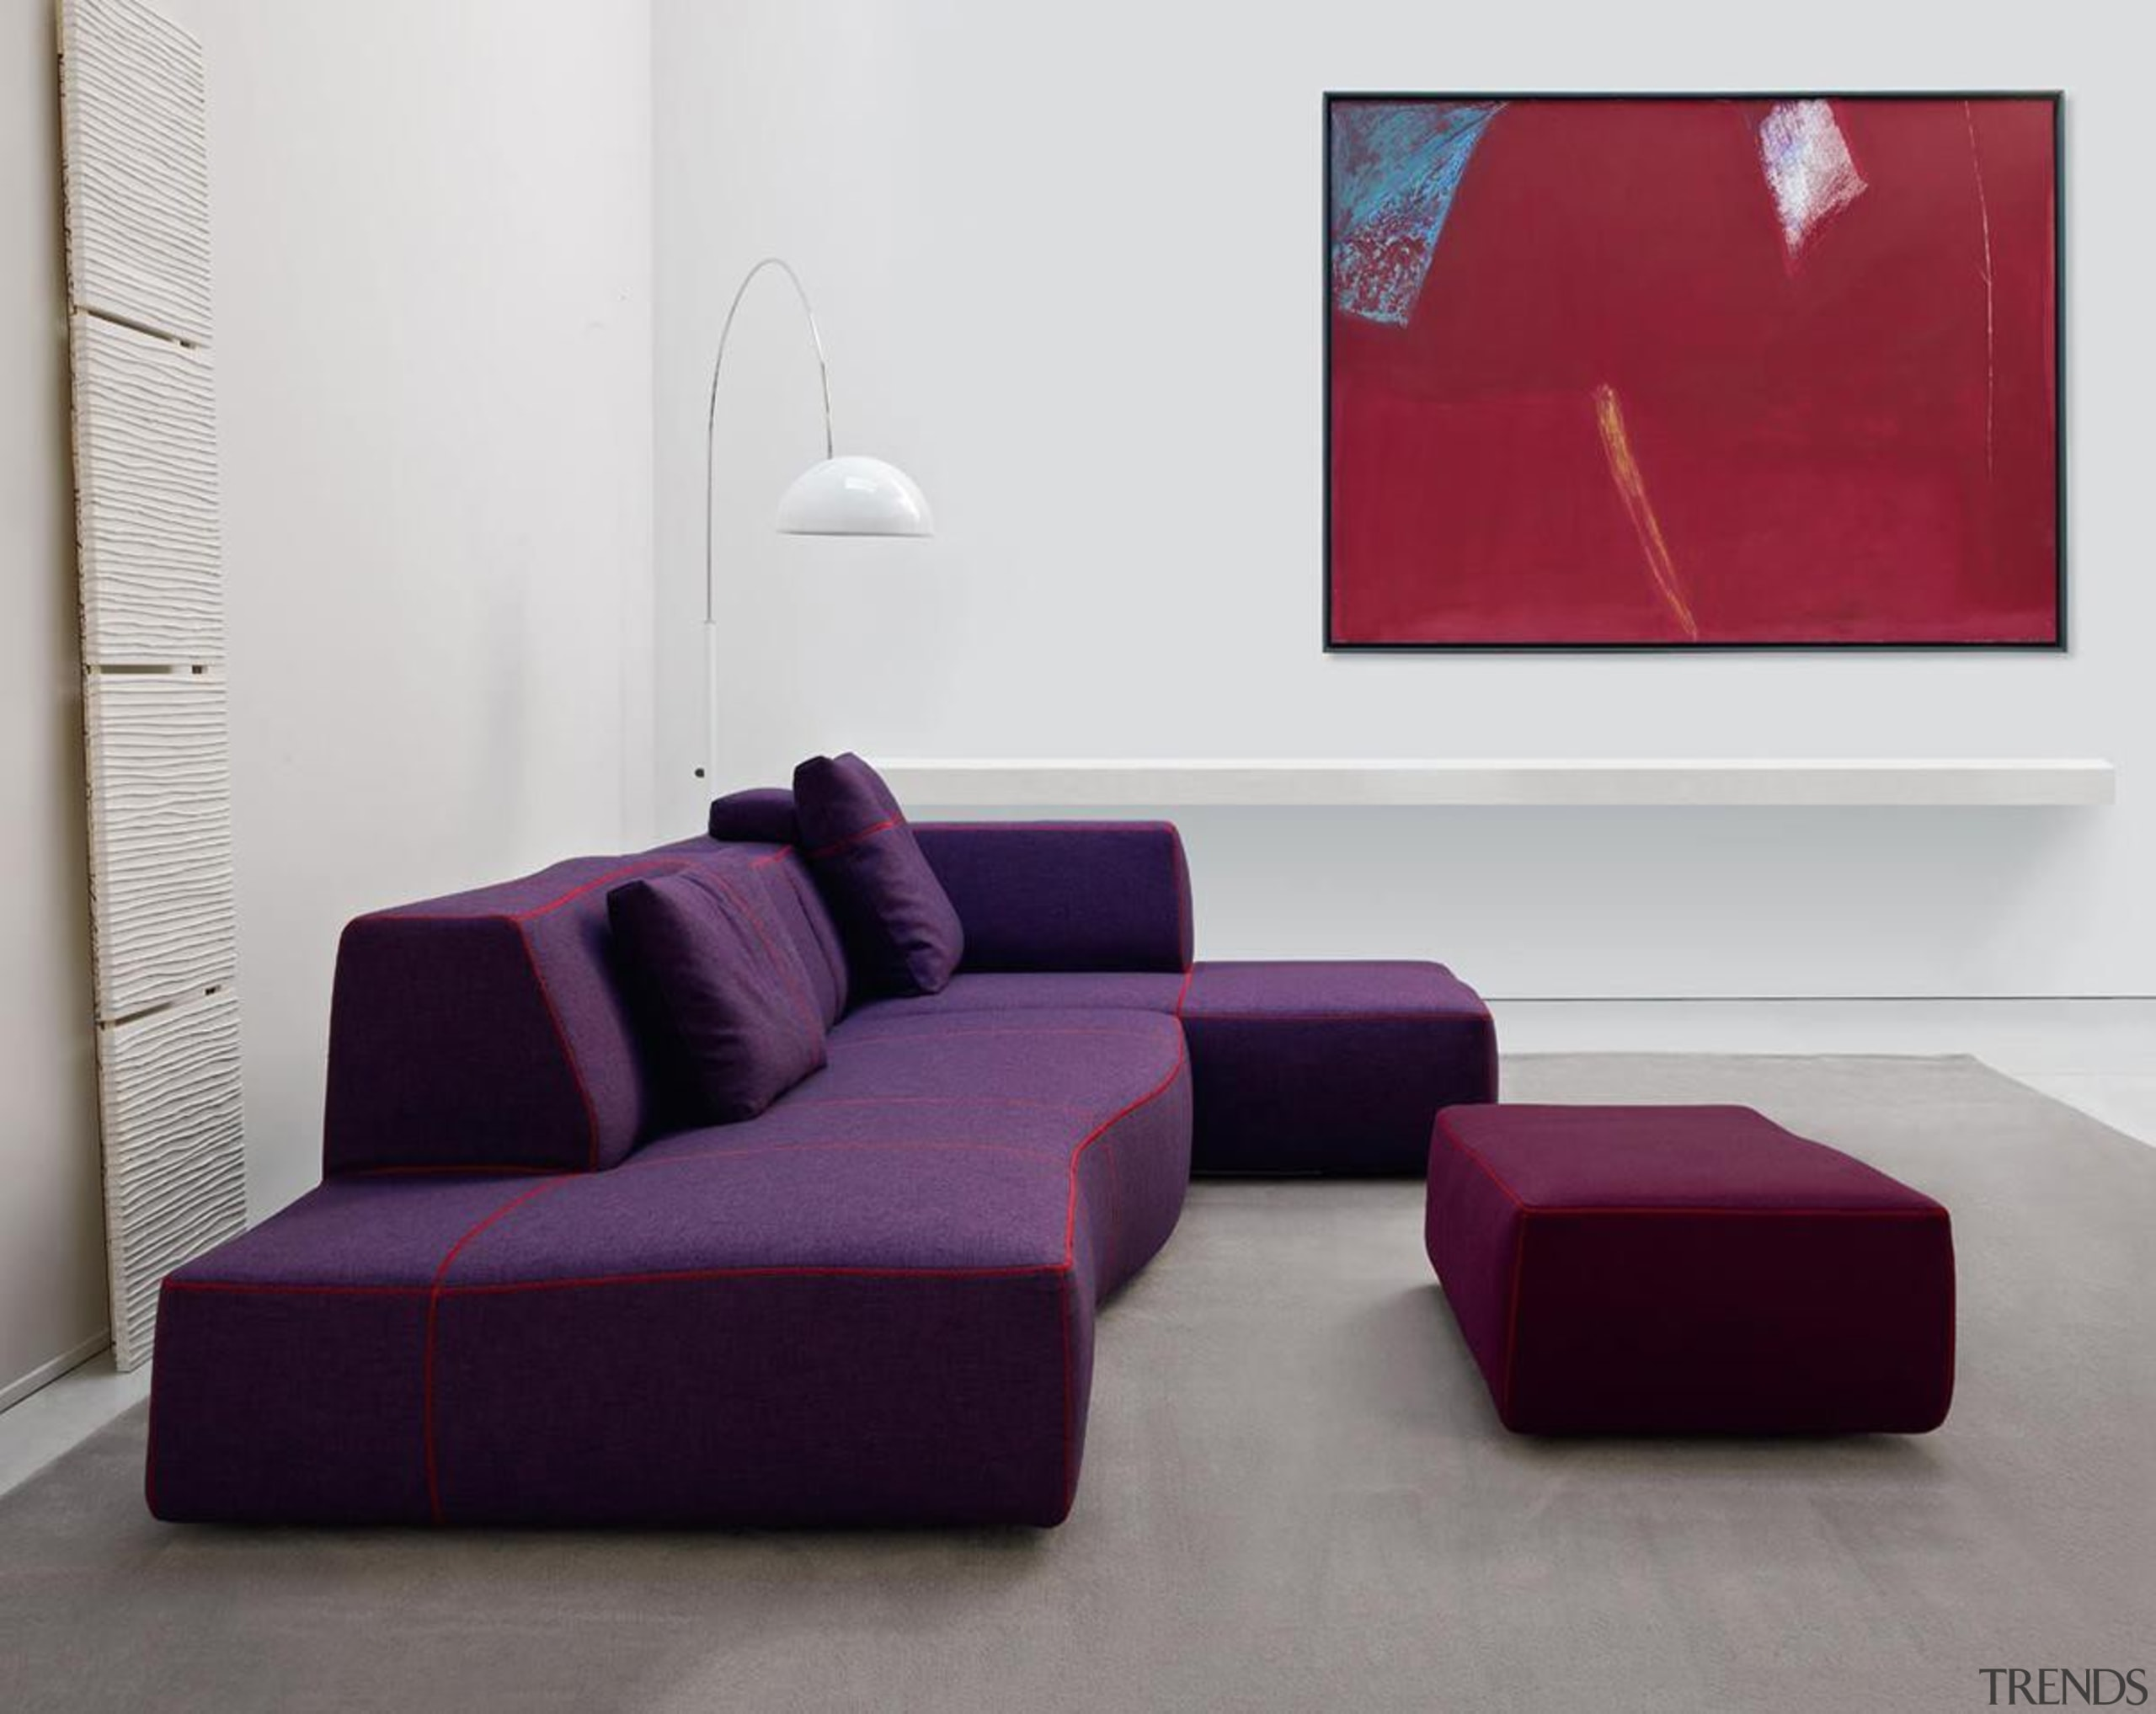 Bend sofa by Patricia Urquiola for B&B Italia angle, chaise longue, coffee table, couch, floor, furniture, interior design, living room, product design, purple, sofa bed, table, gray, white